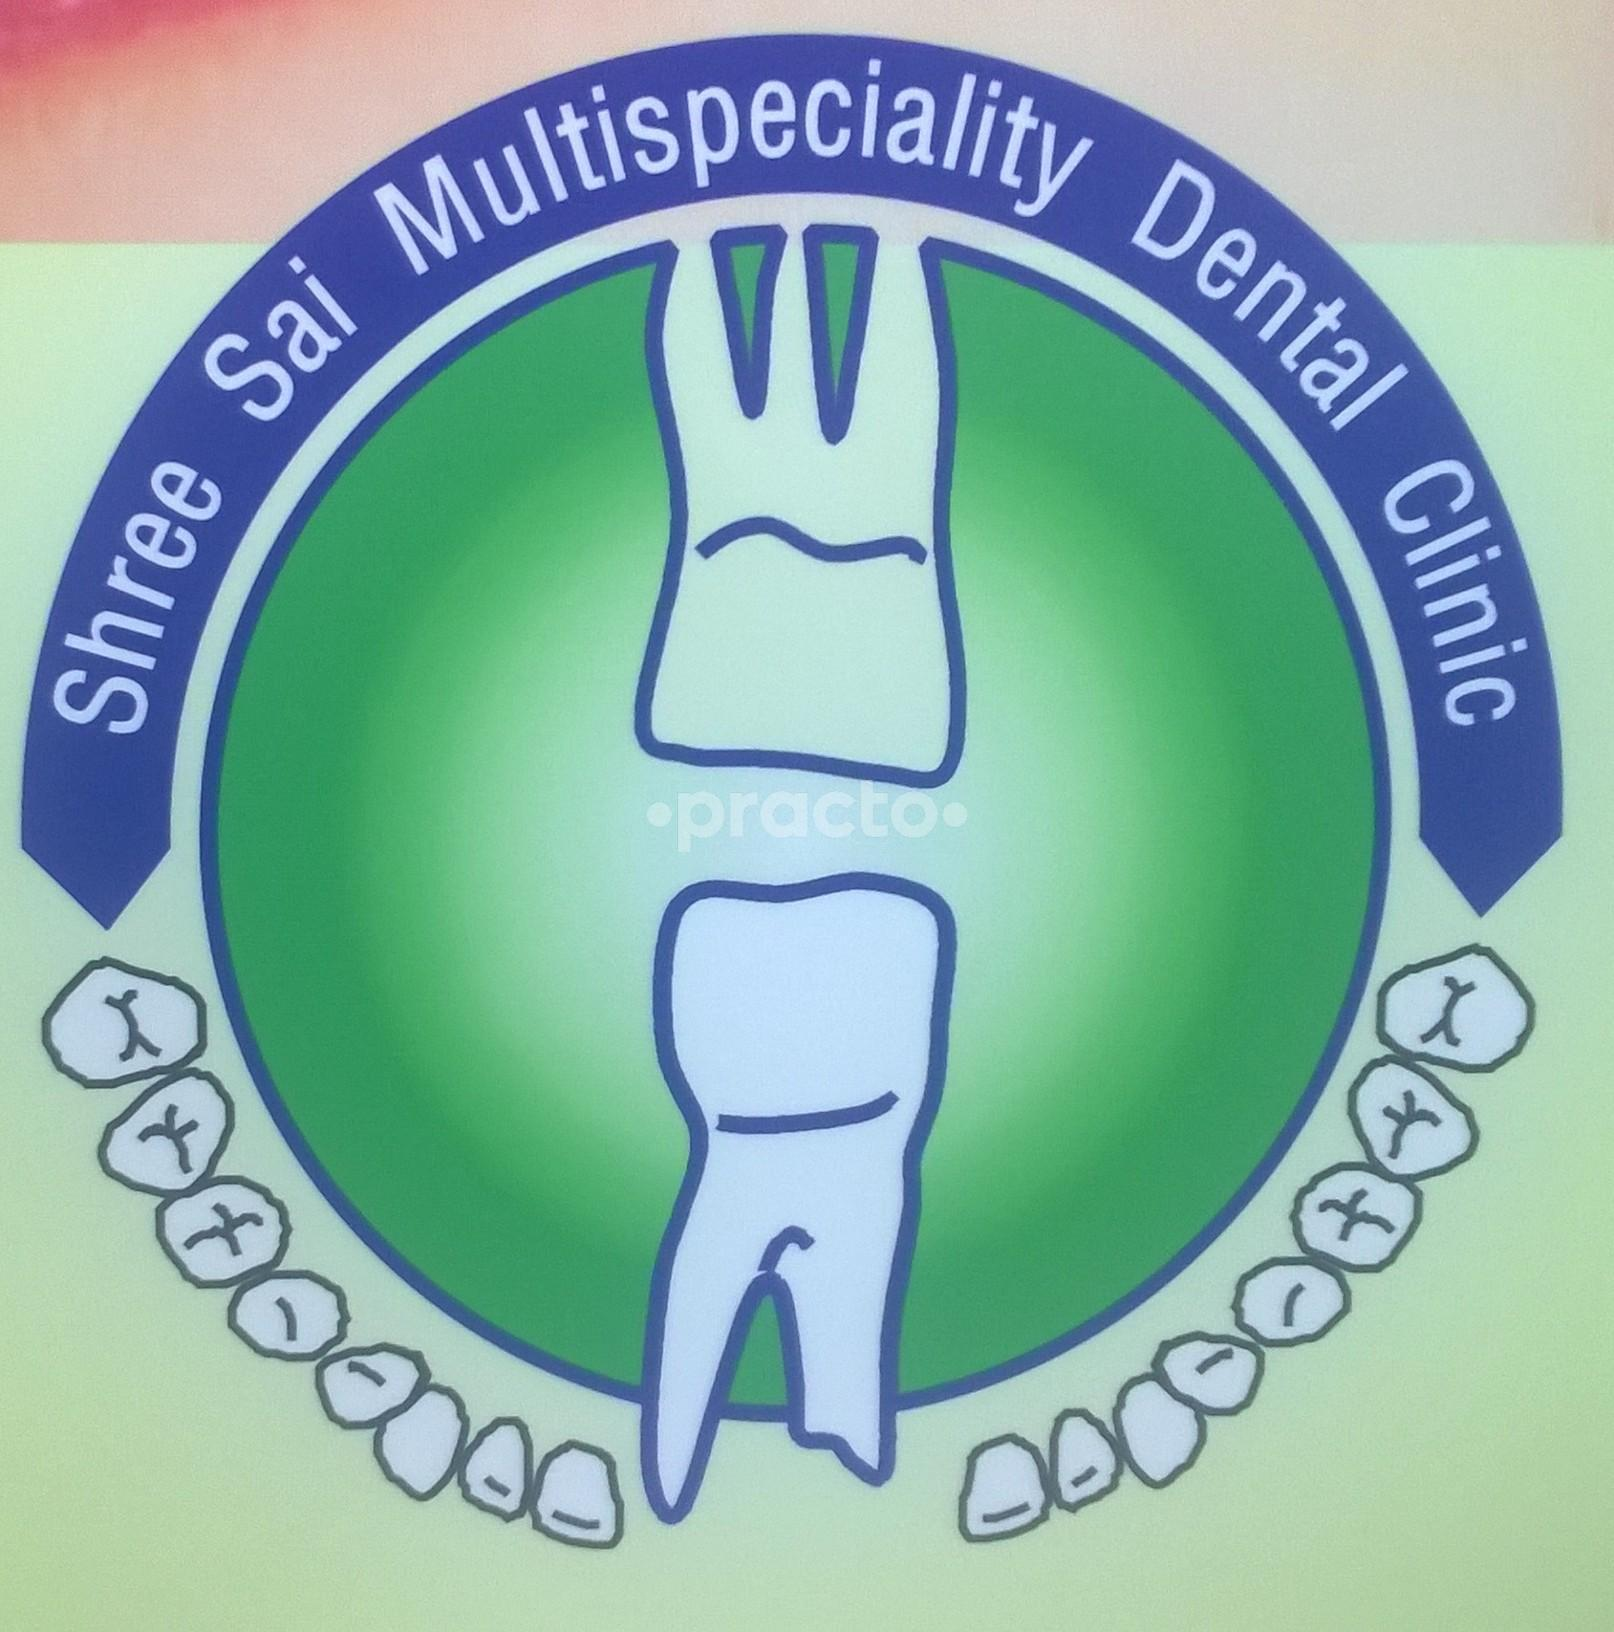 Shree Sai Multispeciality Dental Clinic.